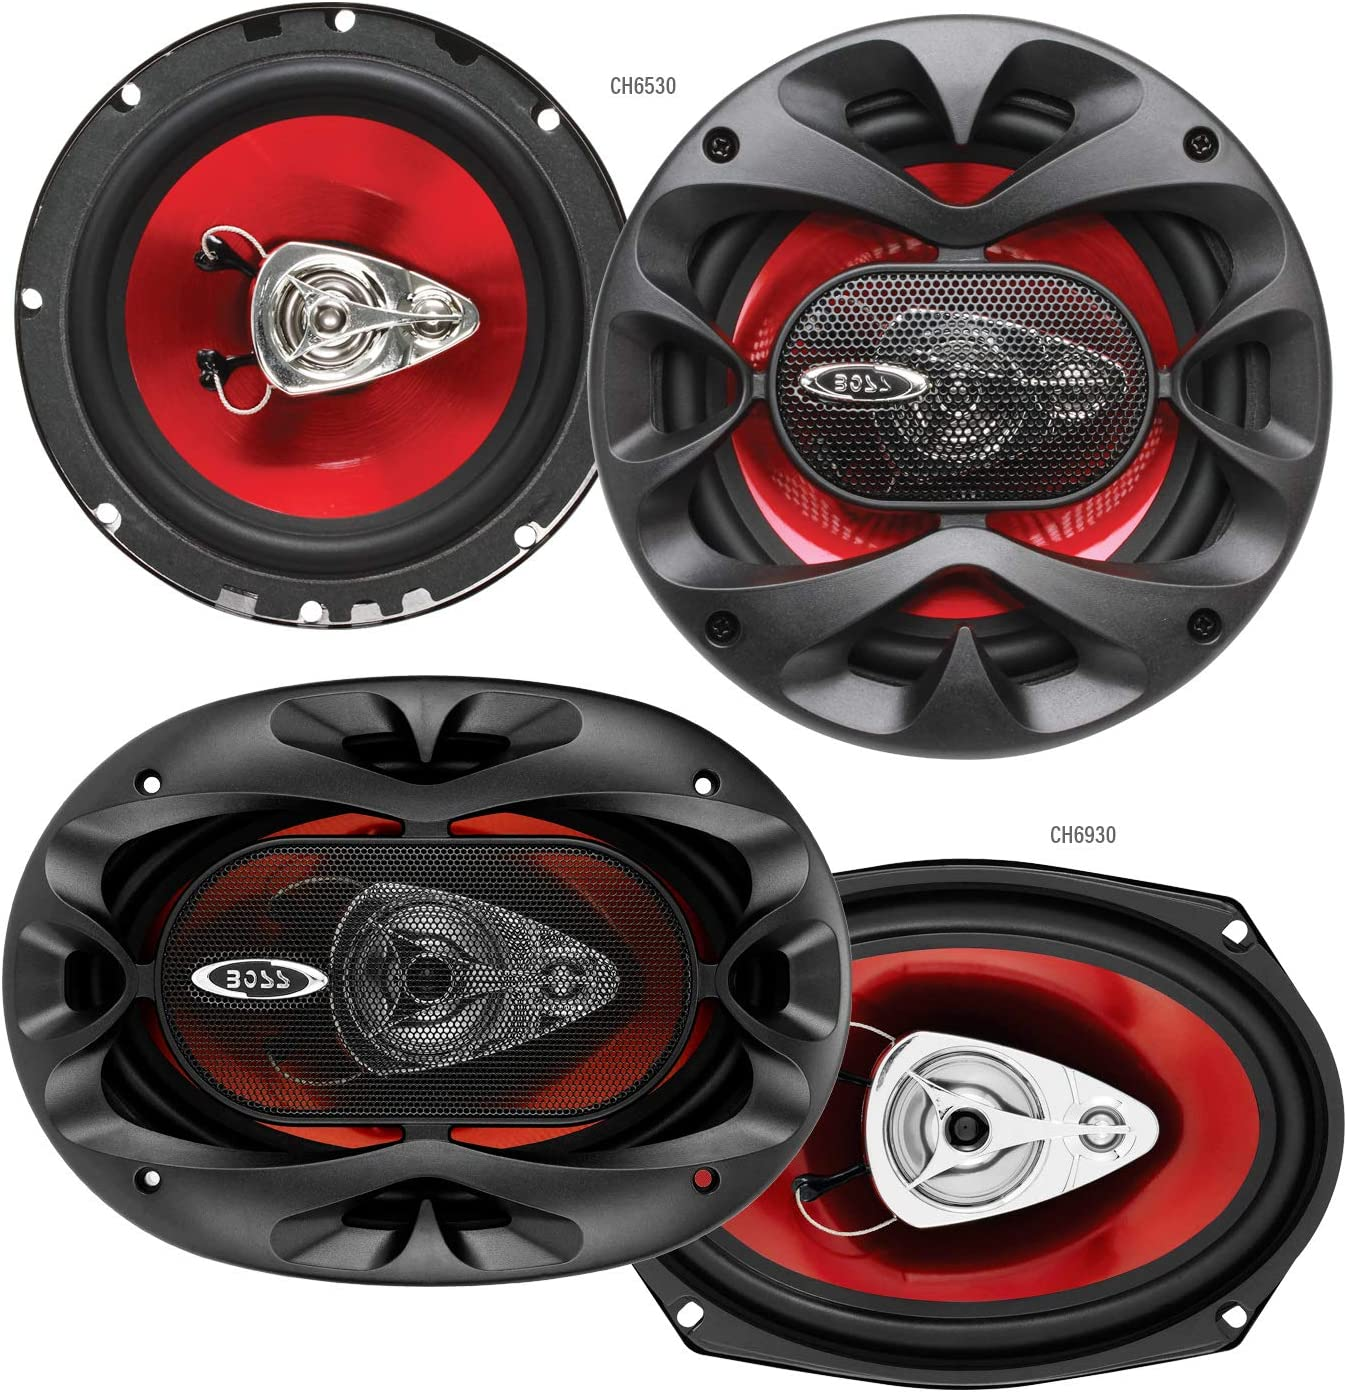 BOSS Audio Systems CH6530 Car Speakers - 300 Watts of Power Per Pair and 150 Watts Each, 6.5 Inch, Full Range, 3 Way, Sold in Pairs + CH6930 Car Speakers - 400 Watts of Power Per Pair, 200 Watts Each,